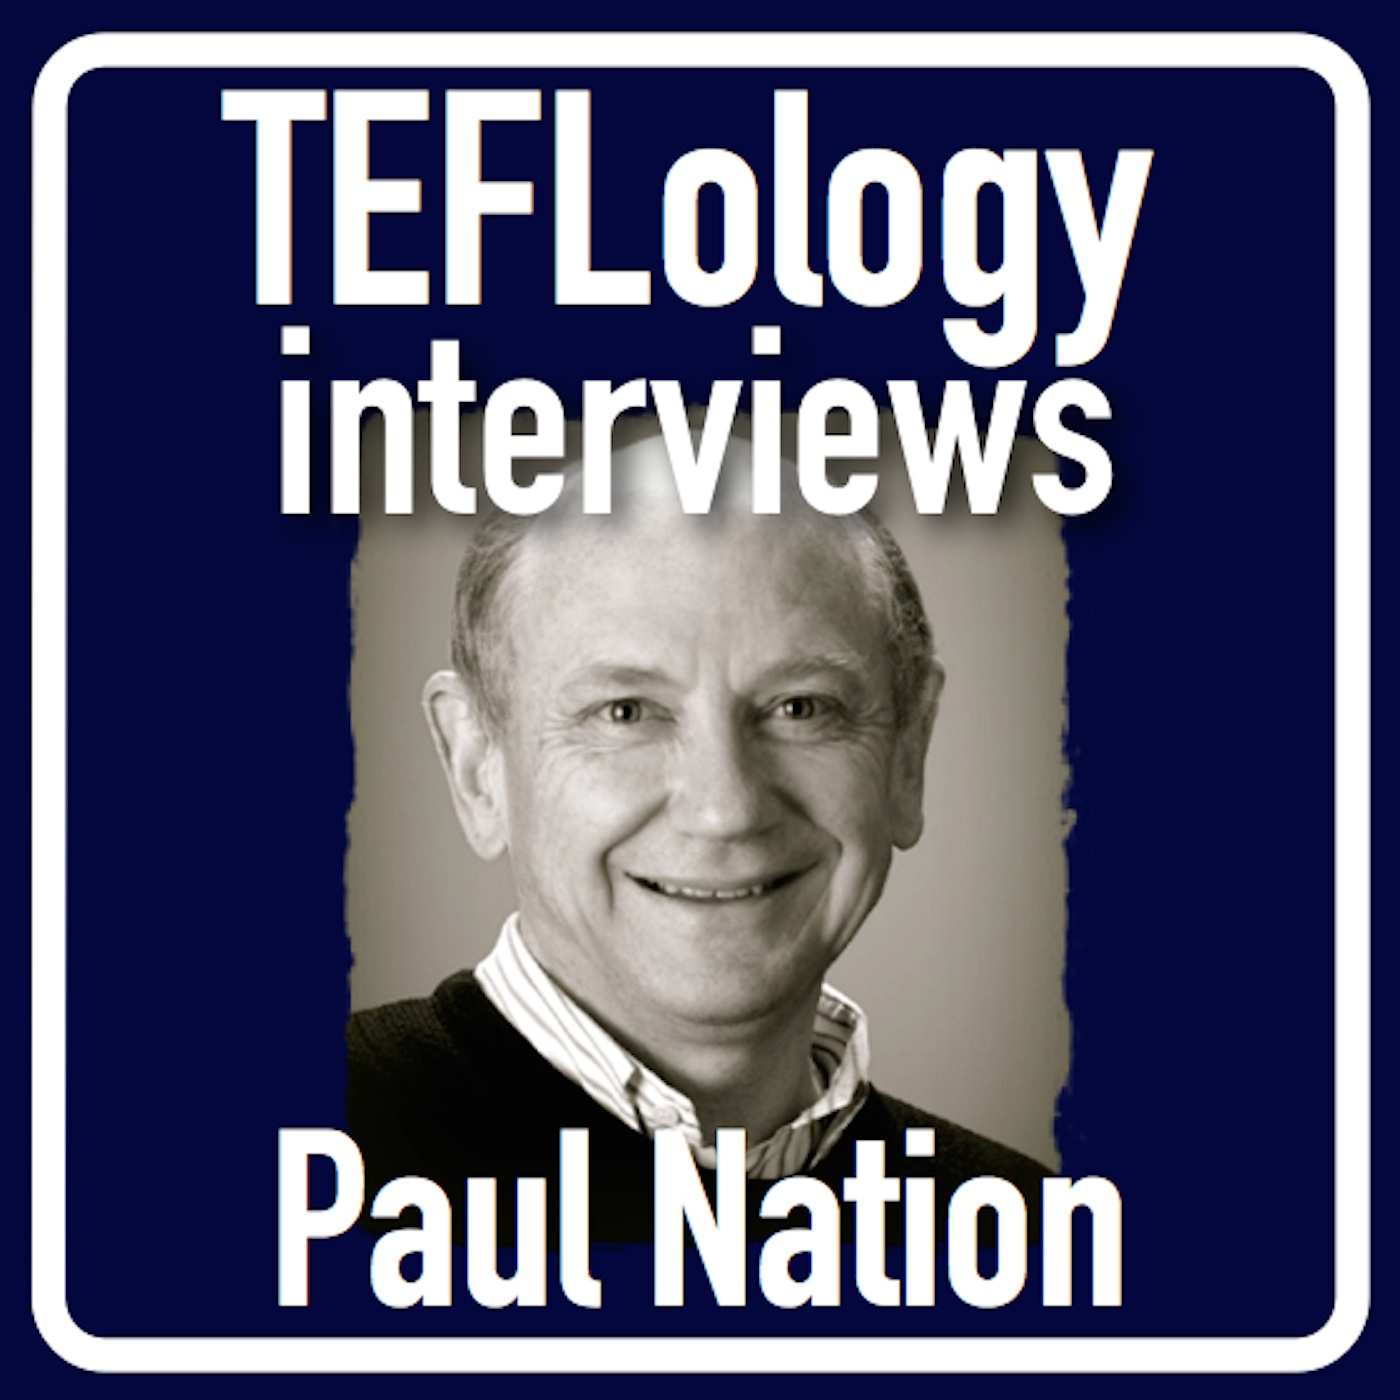 TEFL Interviews 16: Paul Nation on Vocabulary, Fluency, and Curriculum Design